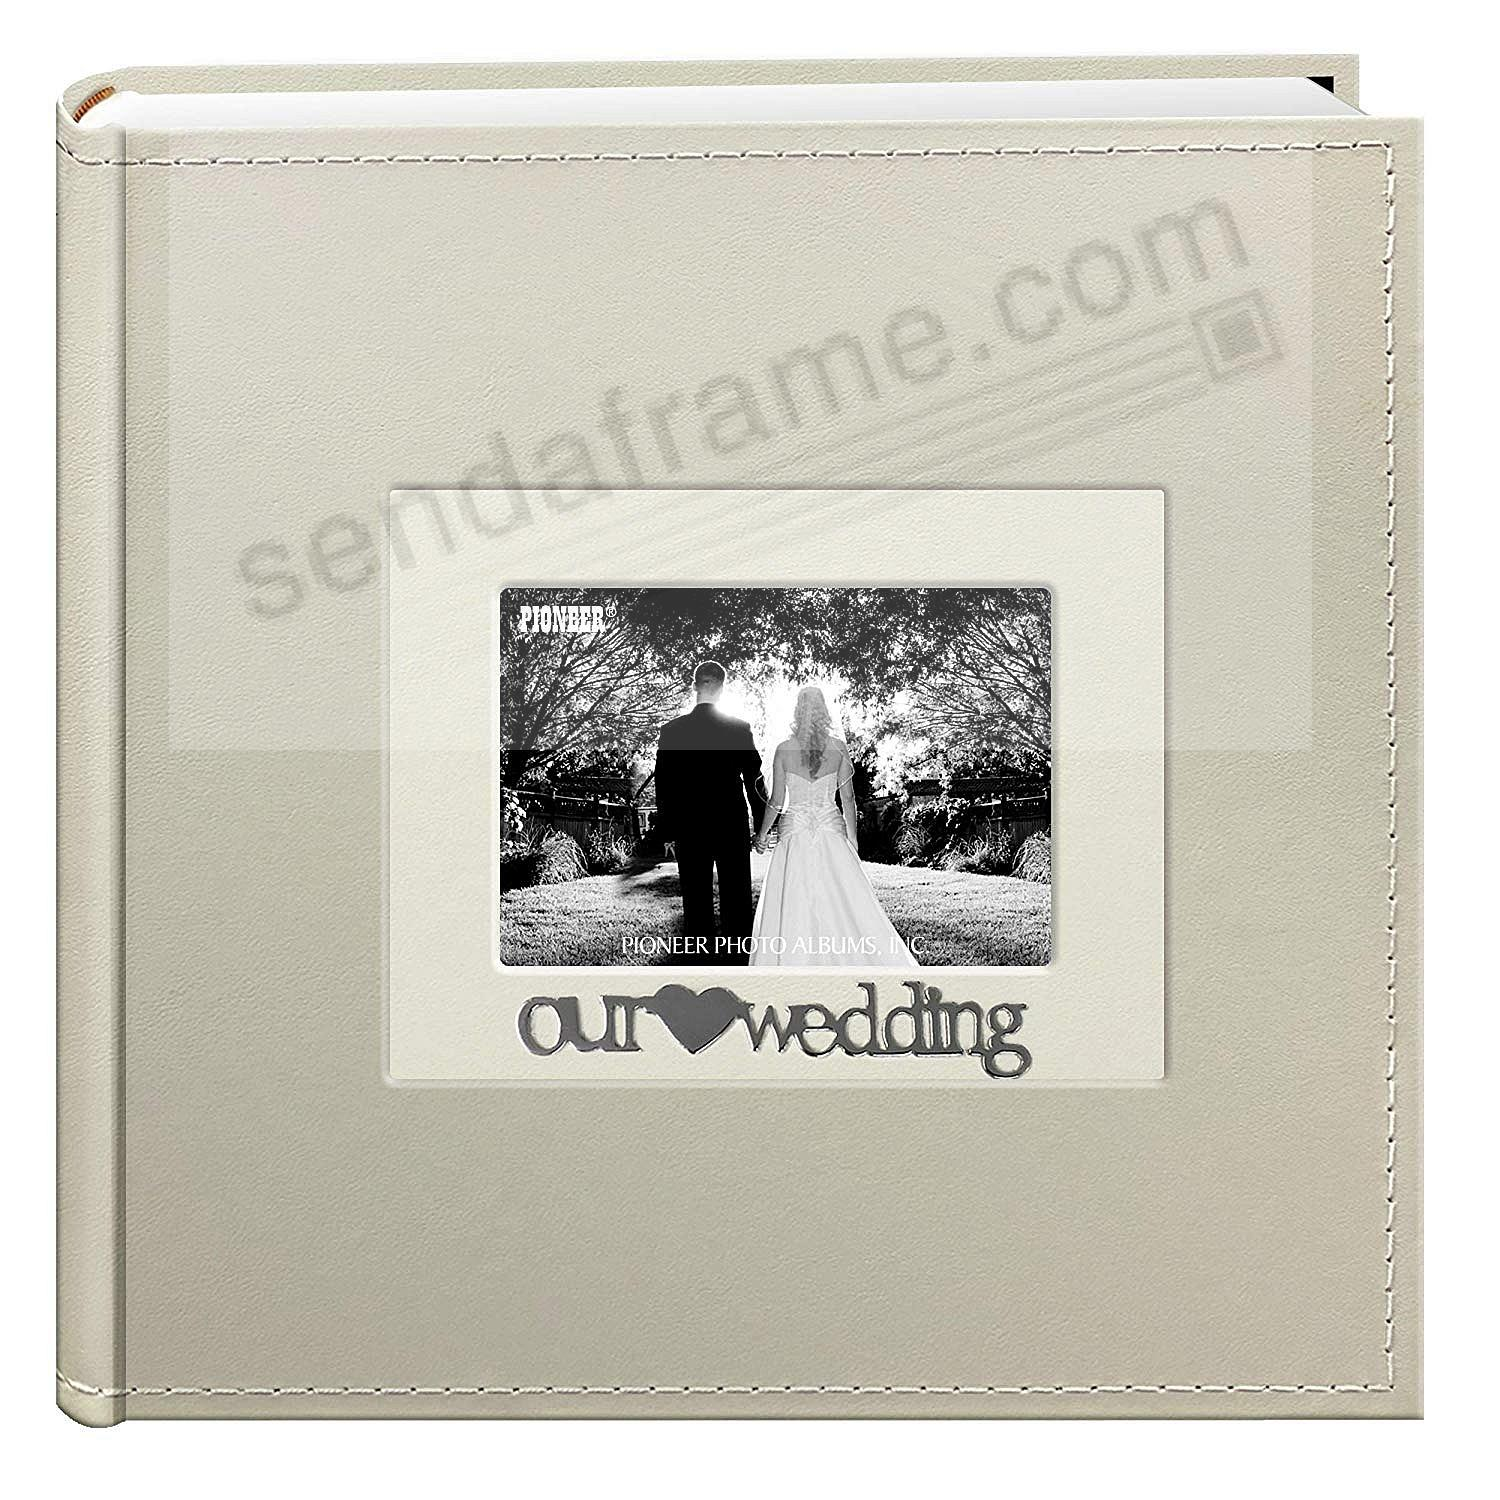 Our Wedding Applique White Album By Pioneer Holds 200 Photos